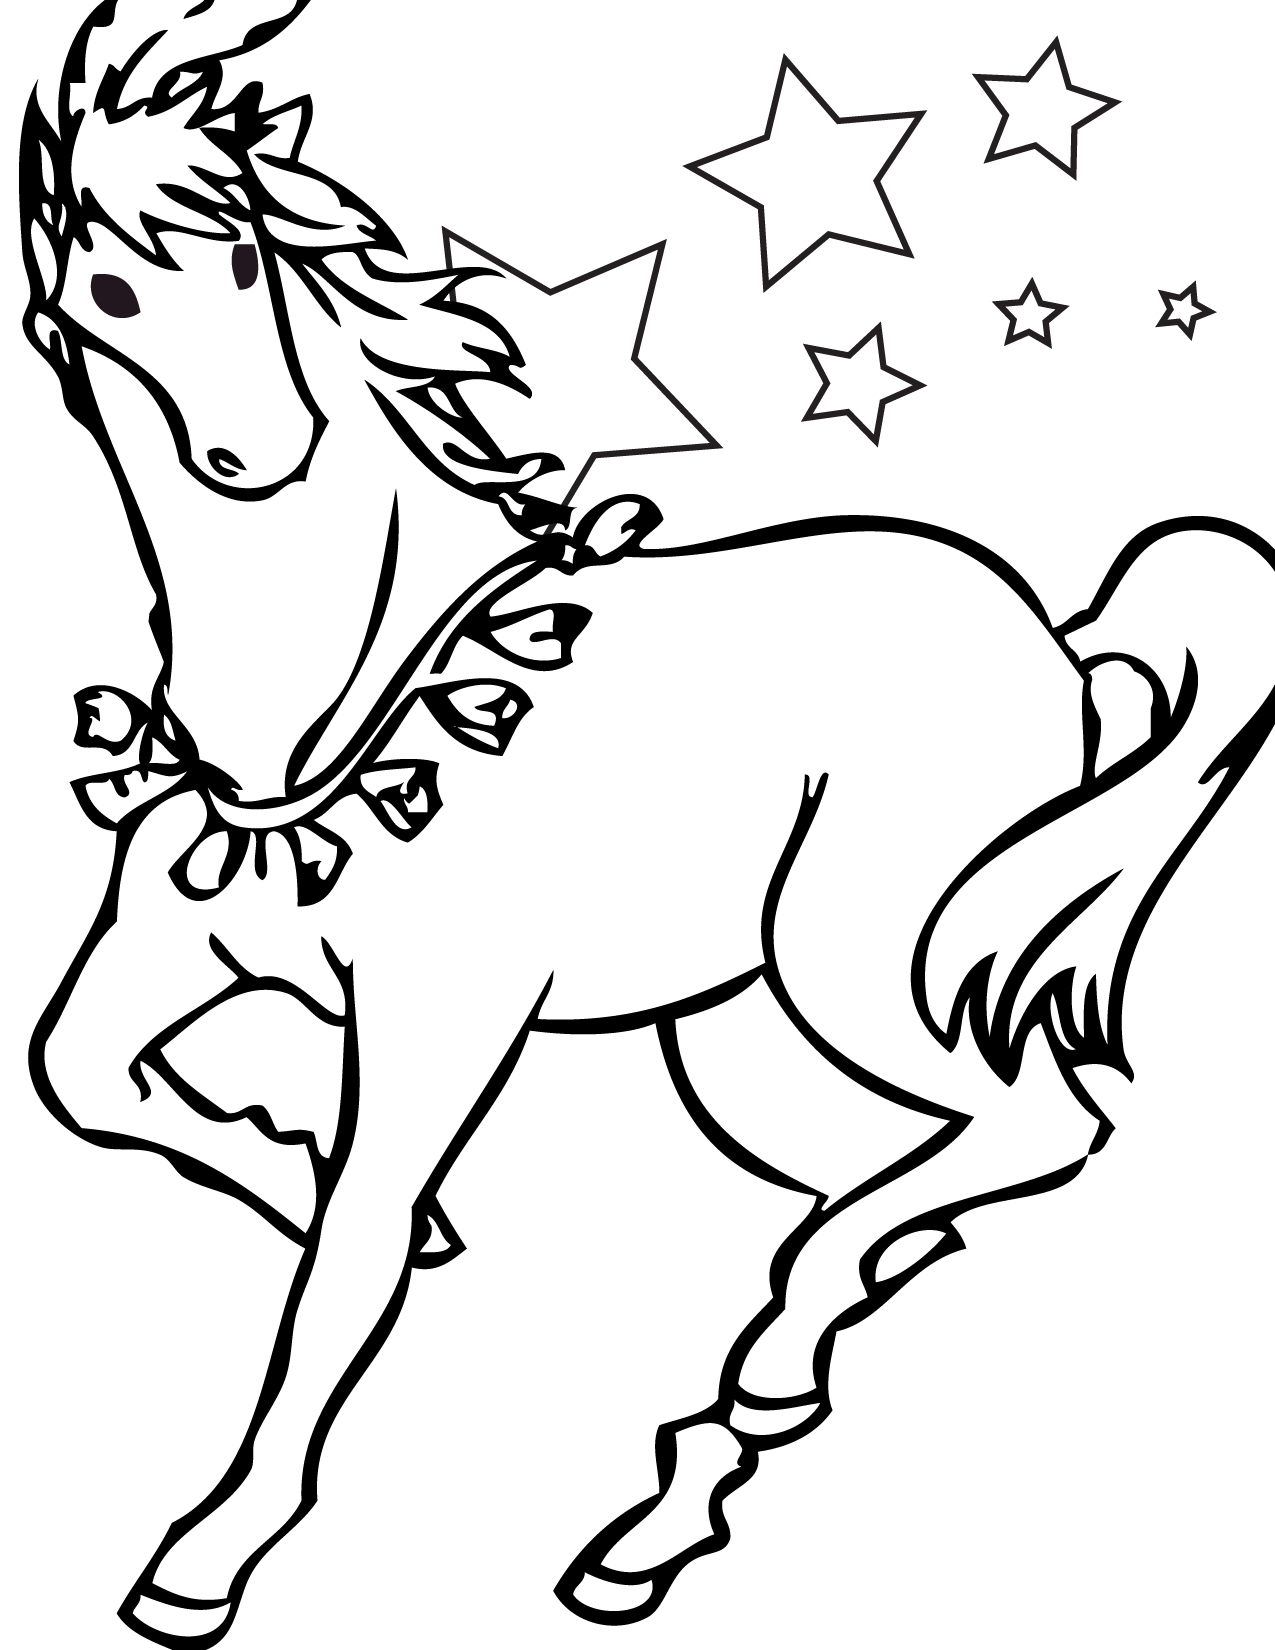 free coloring pages of horses - Horse Color Pages